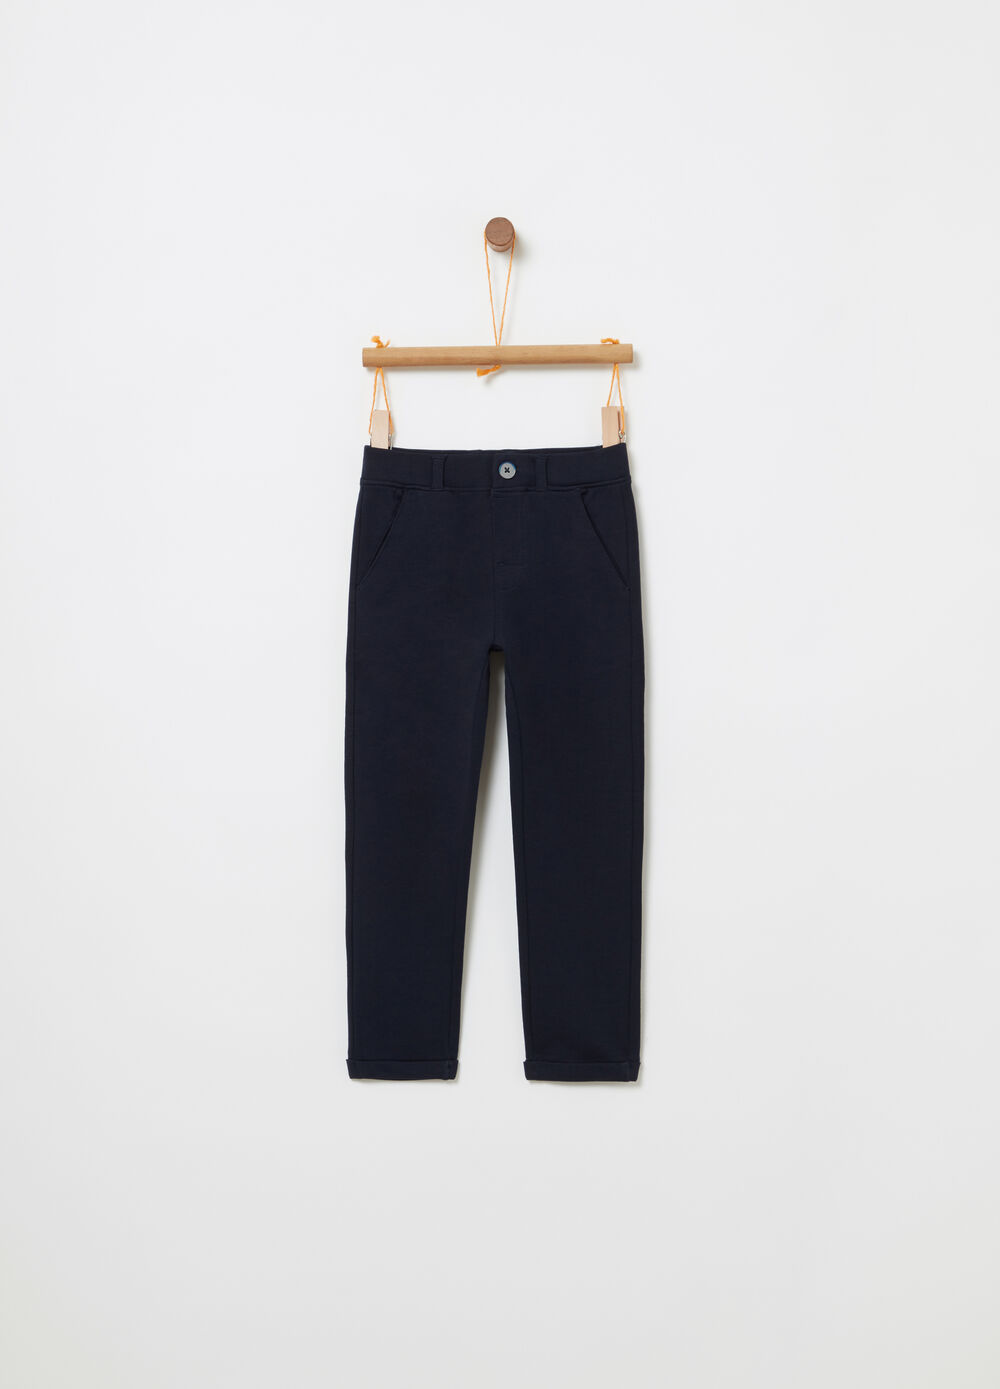 Smart trousers with functional pockets